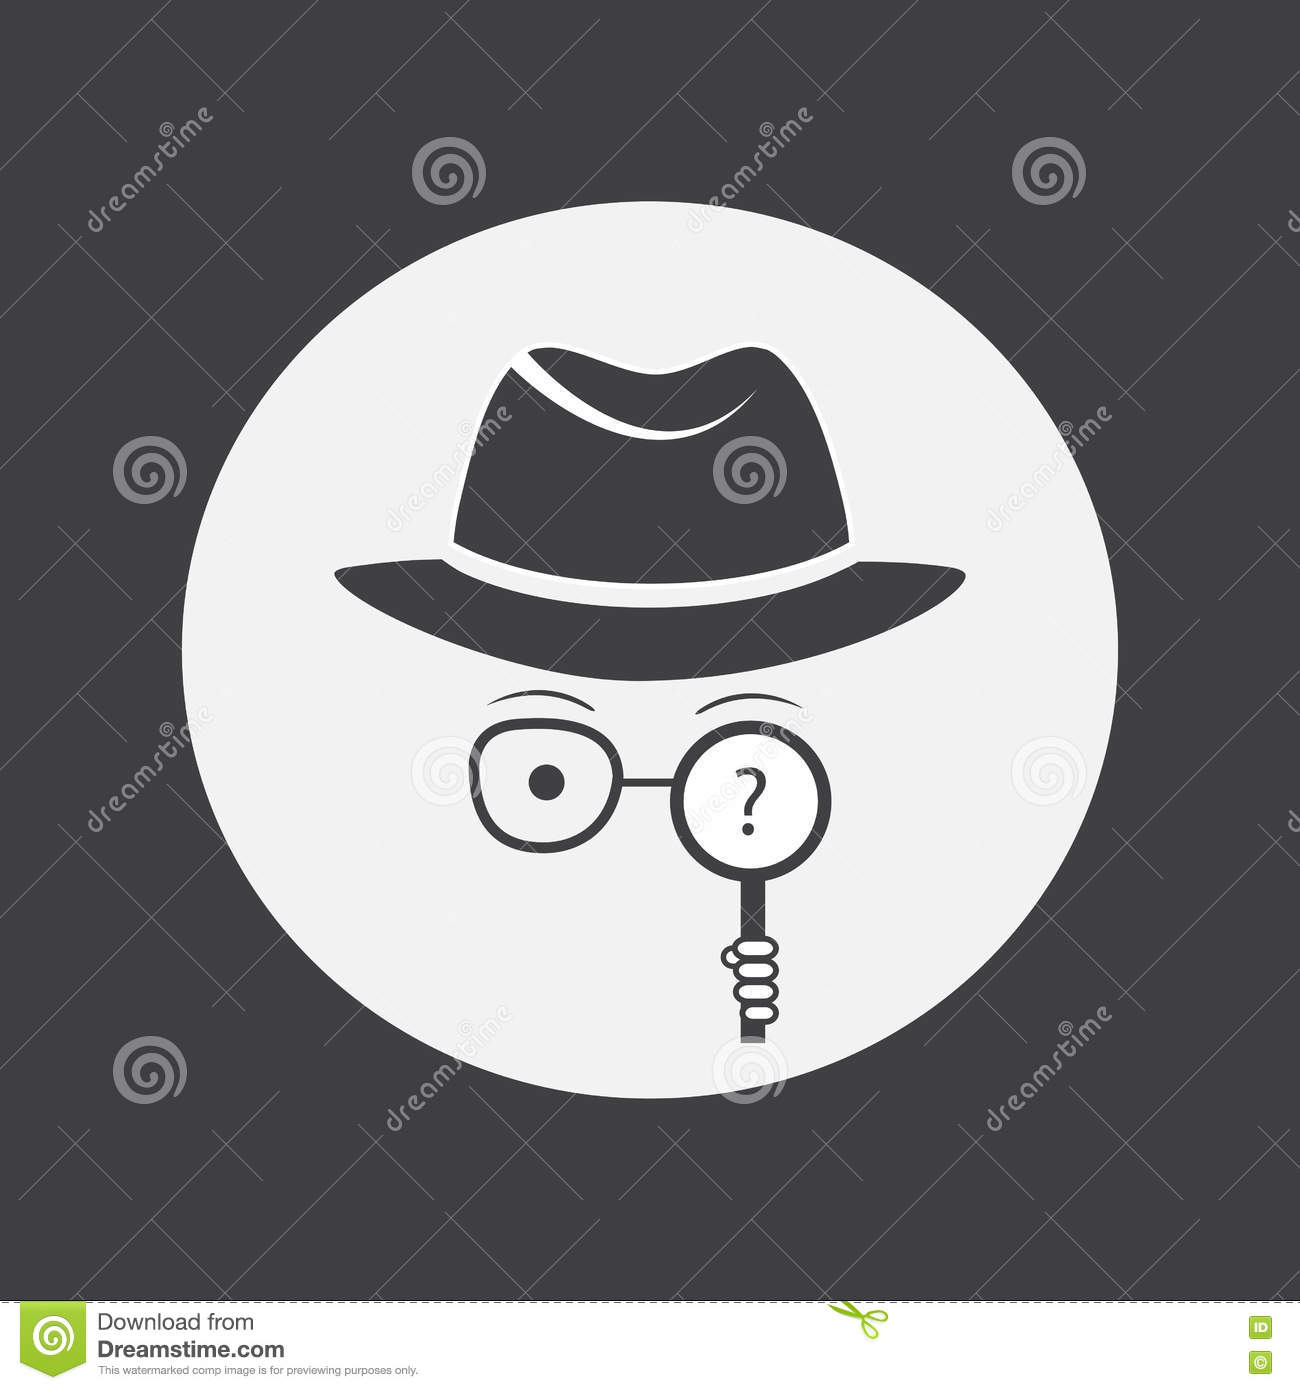 Detective. Spy. Unknown man in hat, glasses and a magnifying glass in hand.